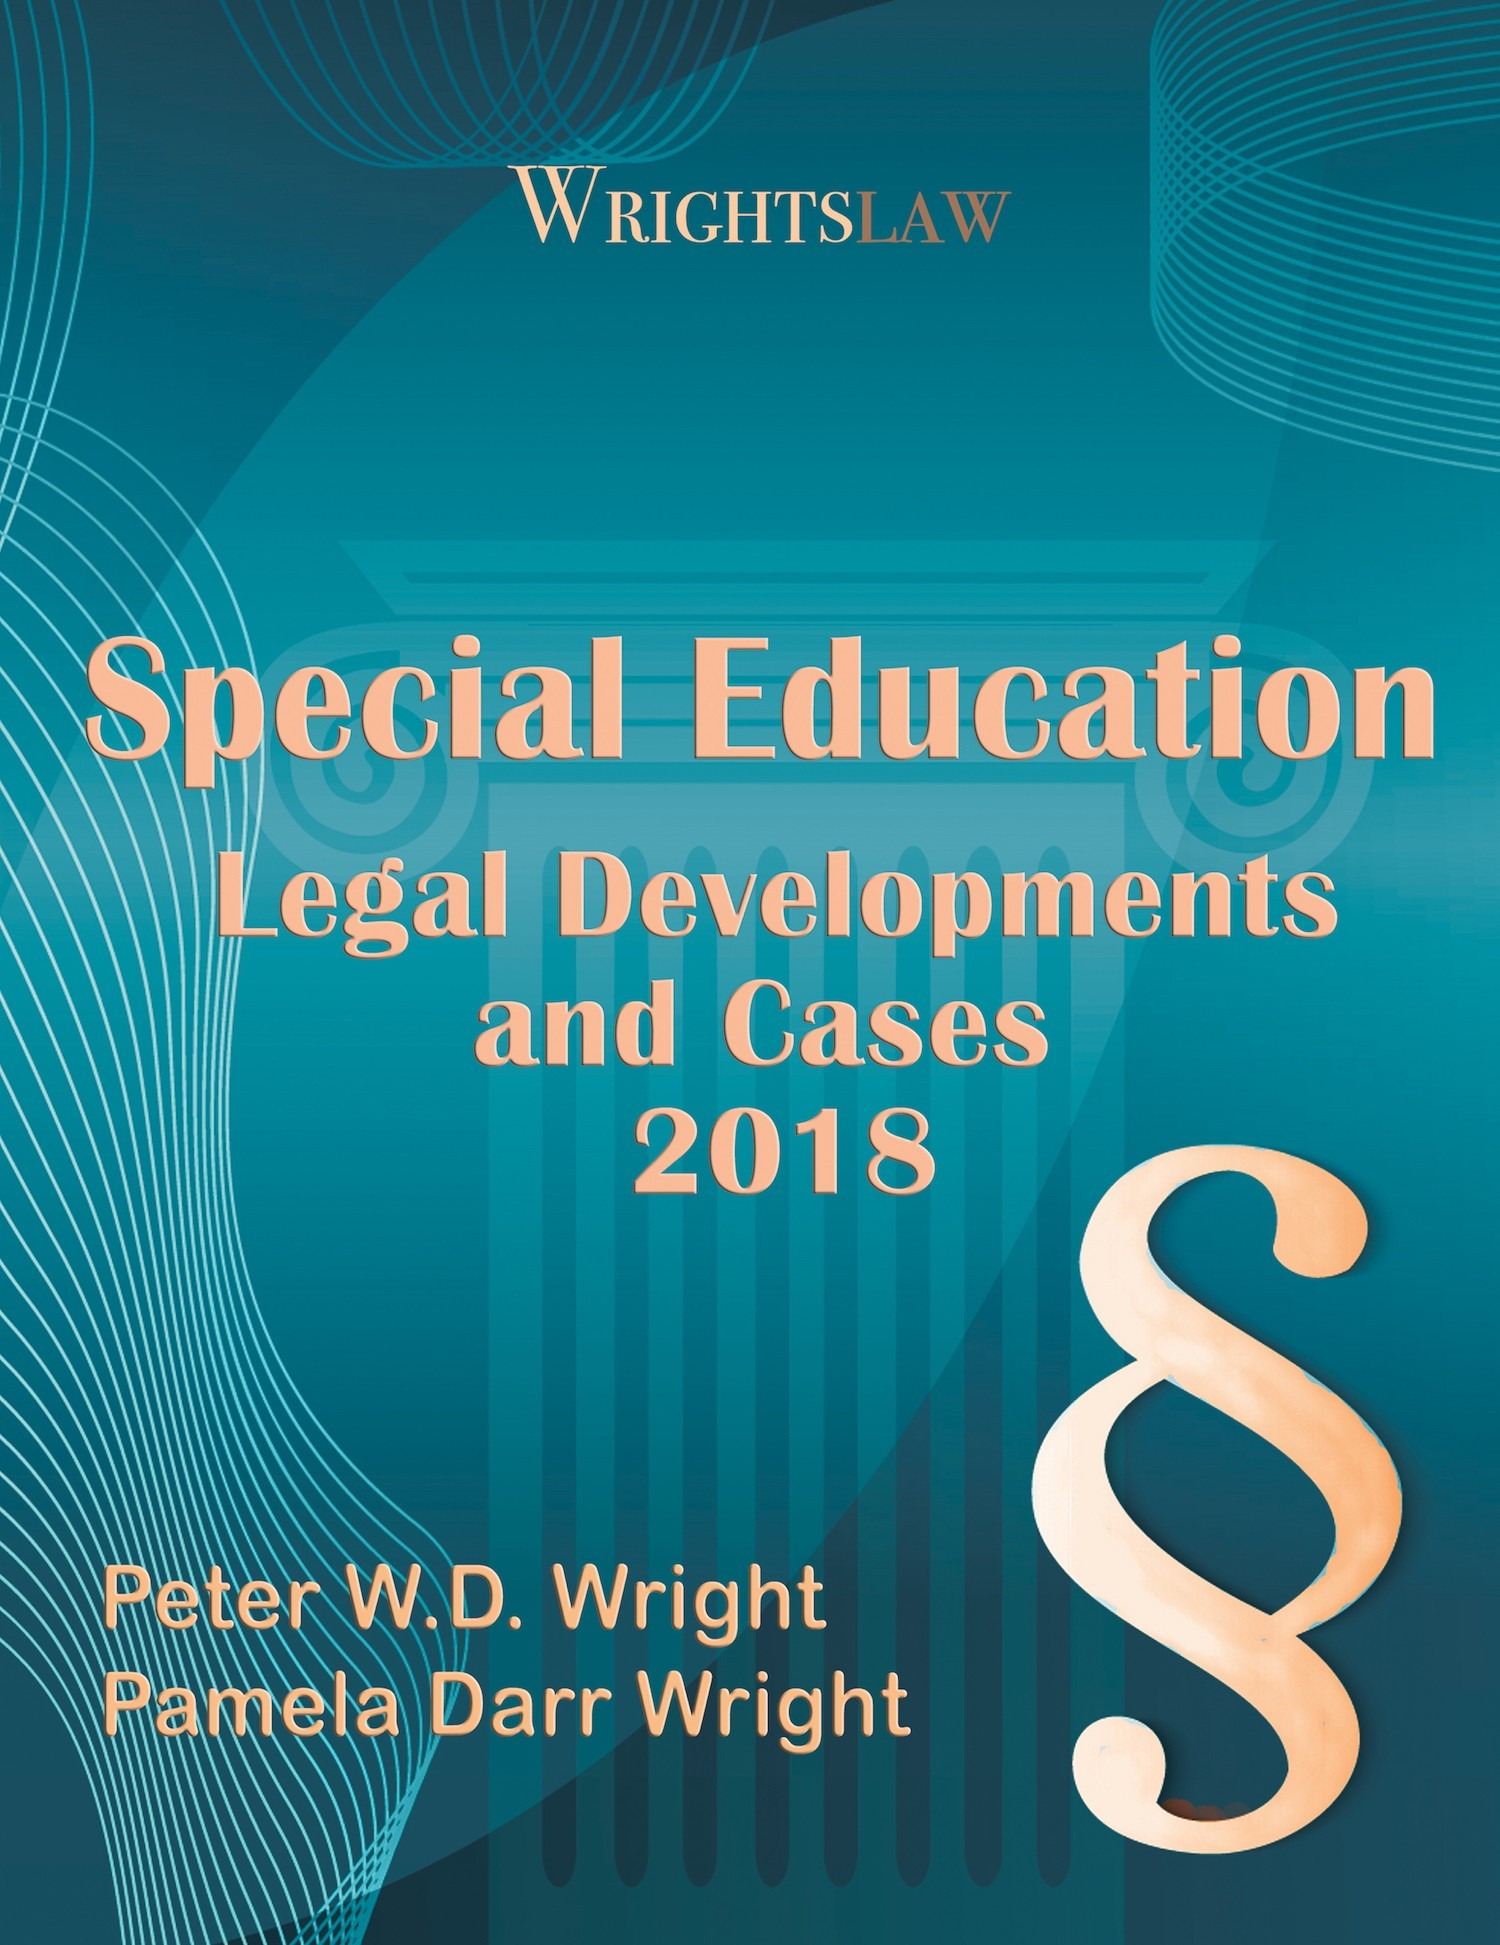 image of Wrightslaw Special Education Legal Developments and Cases 2018 book cover